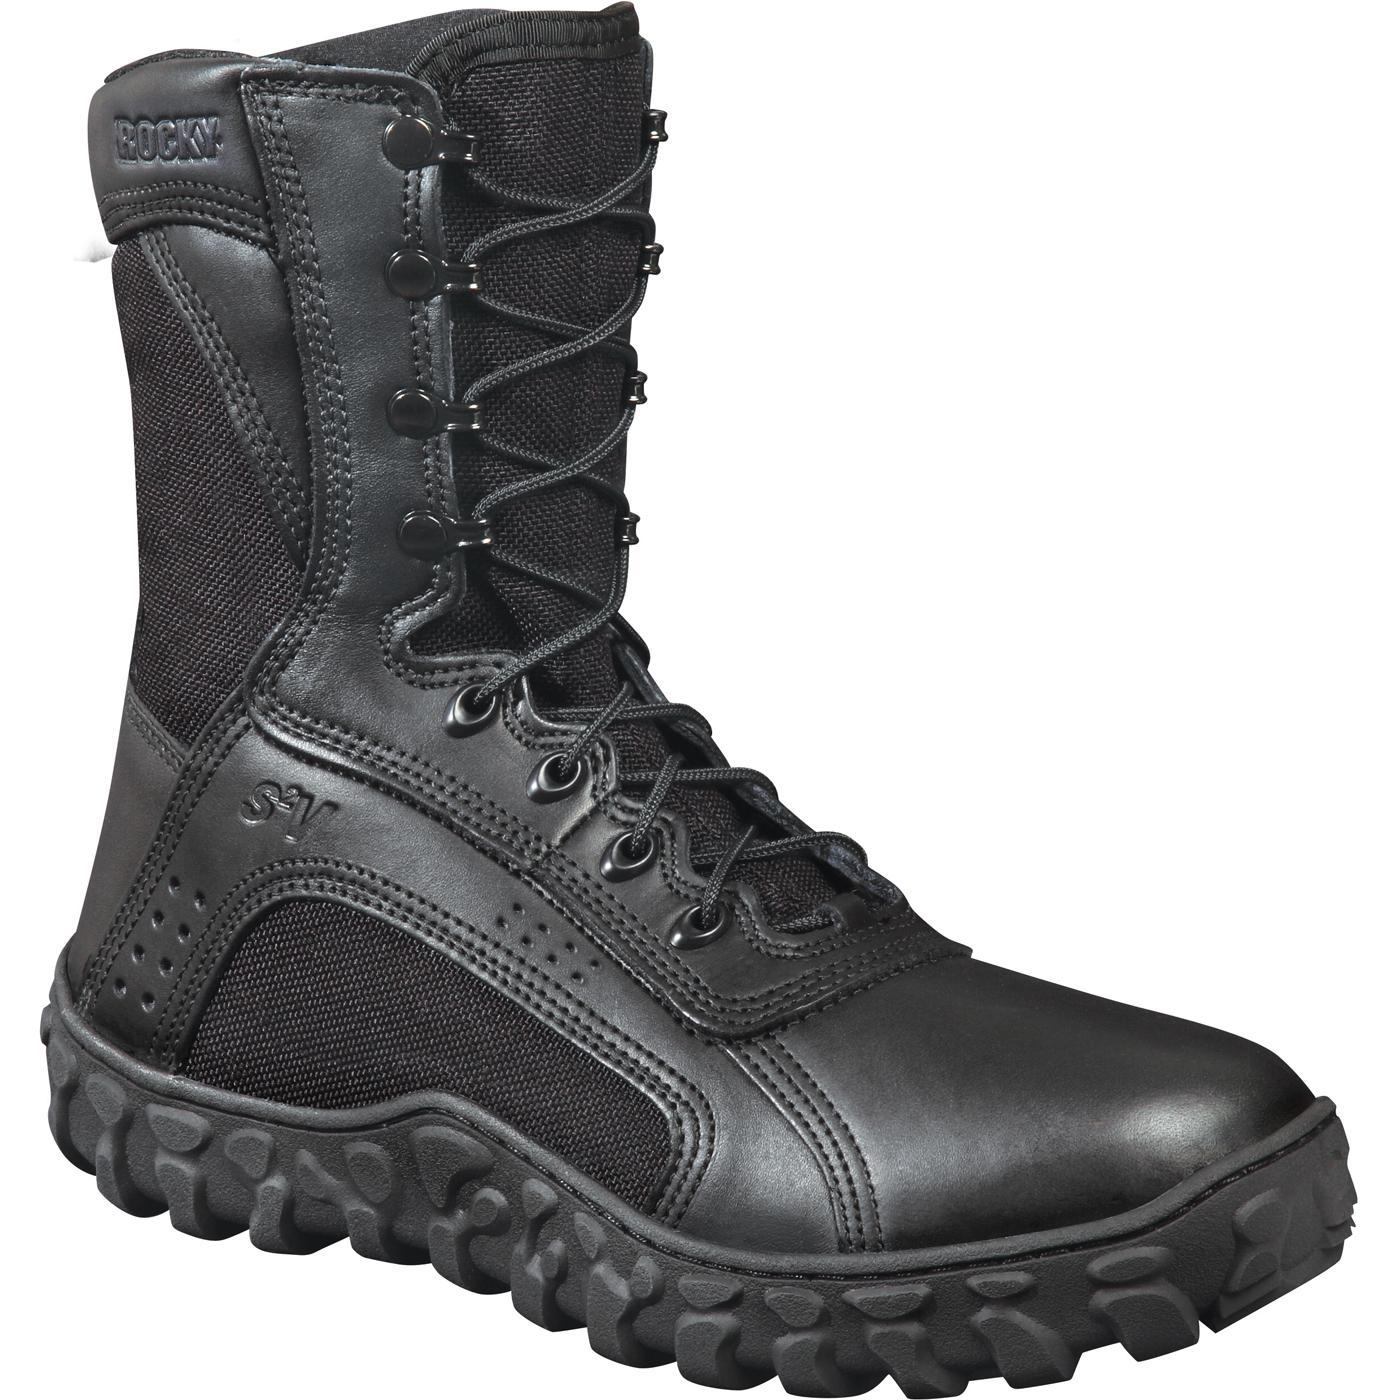 Rocky S2v Vented Military Duty Boots 14 Regular Ebay